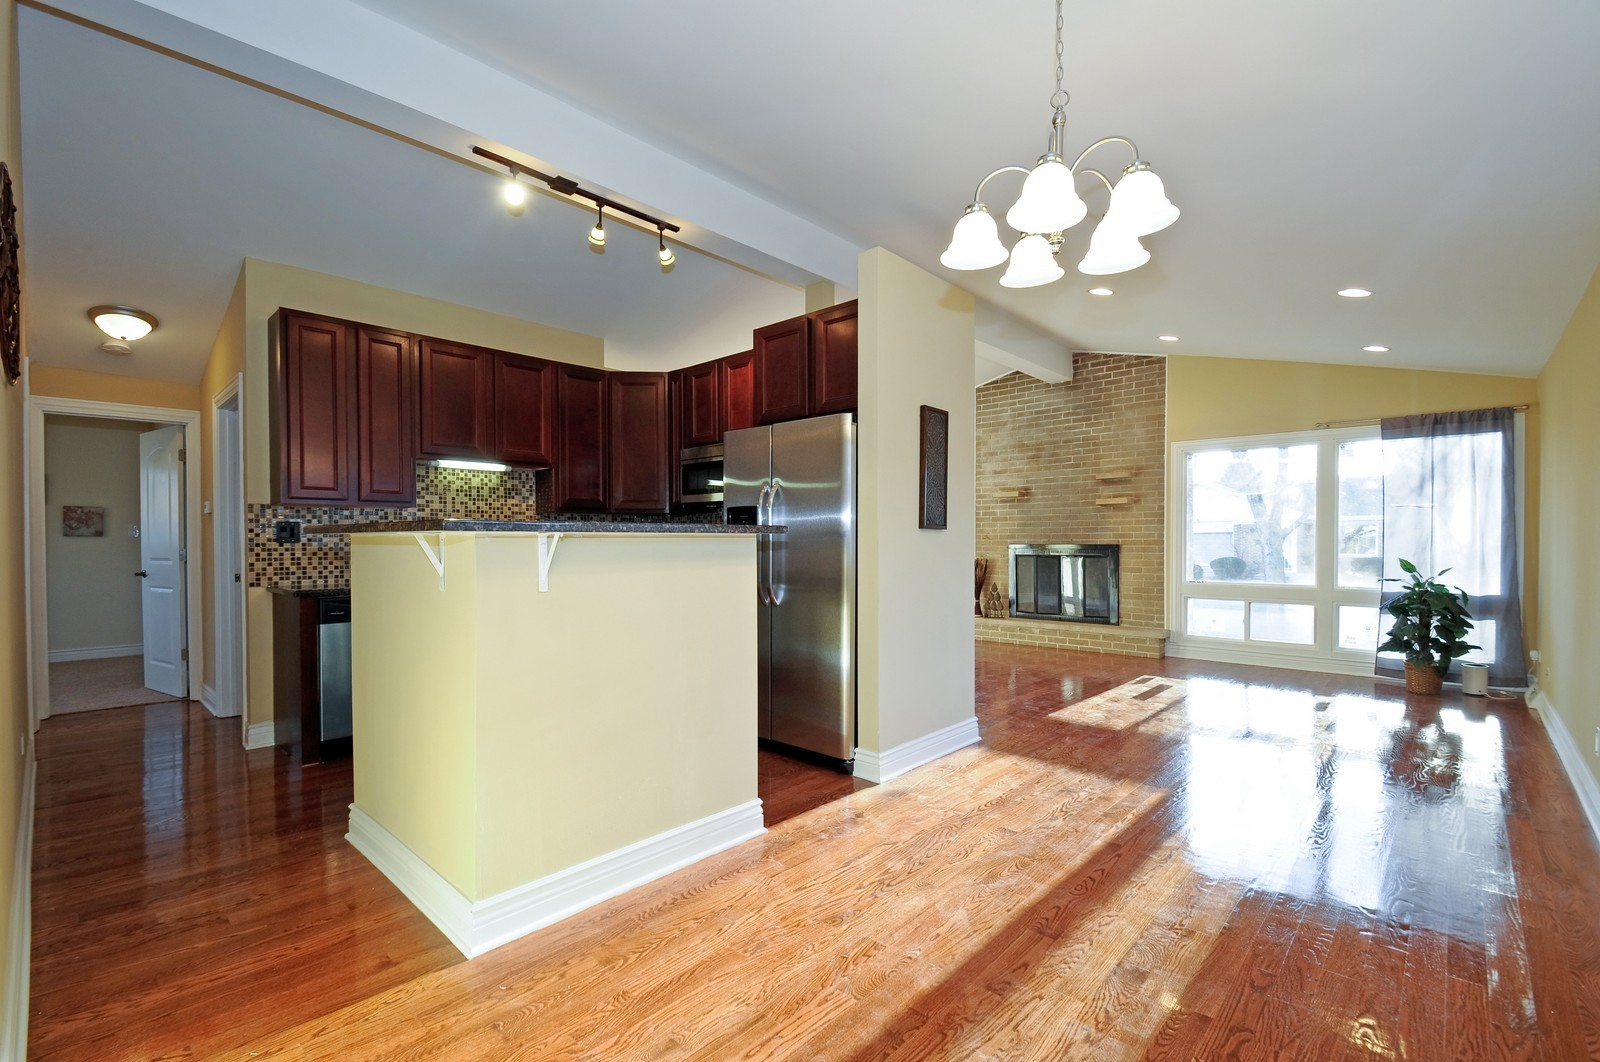 Real Estate Photography - 1238 King Drive, South Holland, IL, 60473 - Kitchen / Breakfast Room